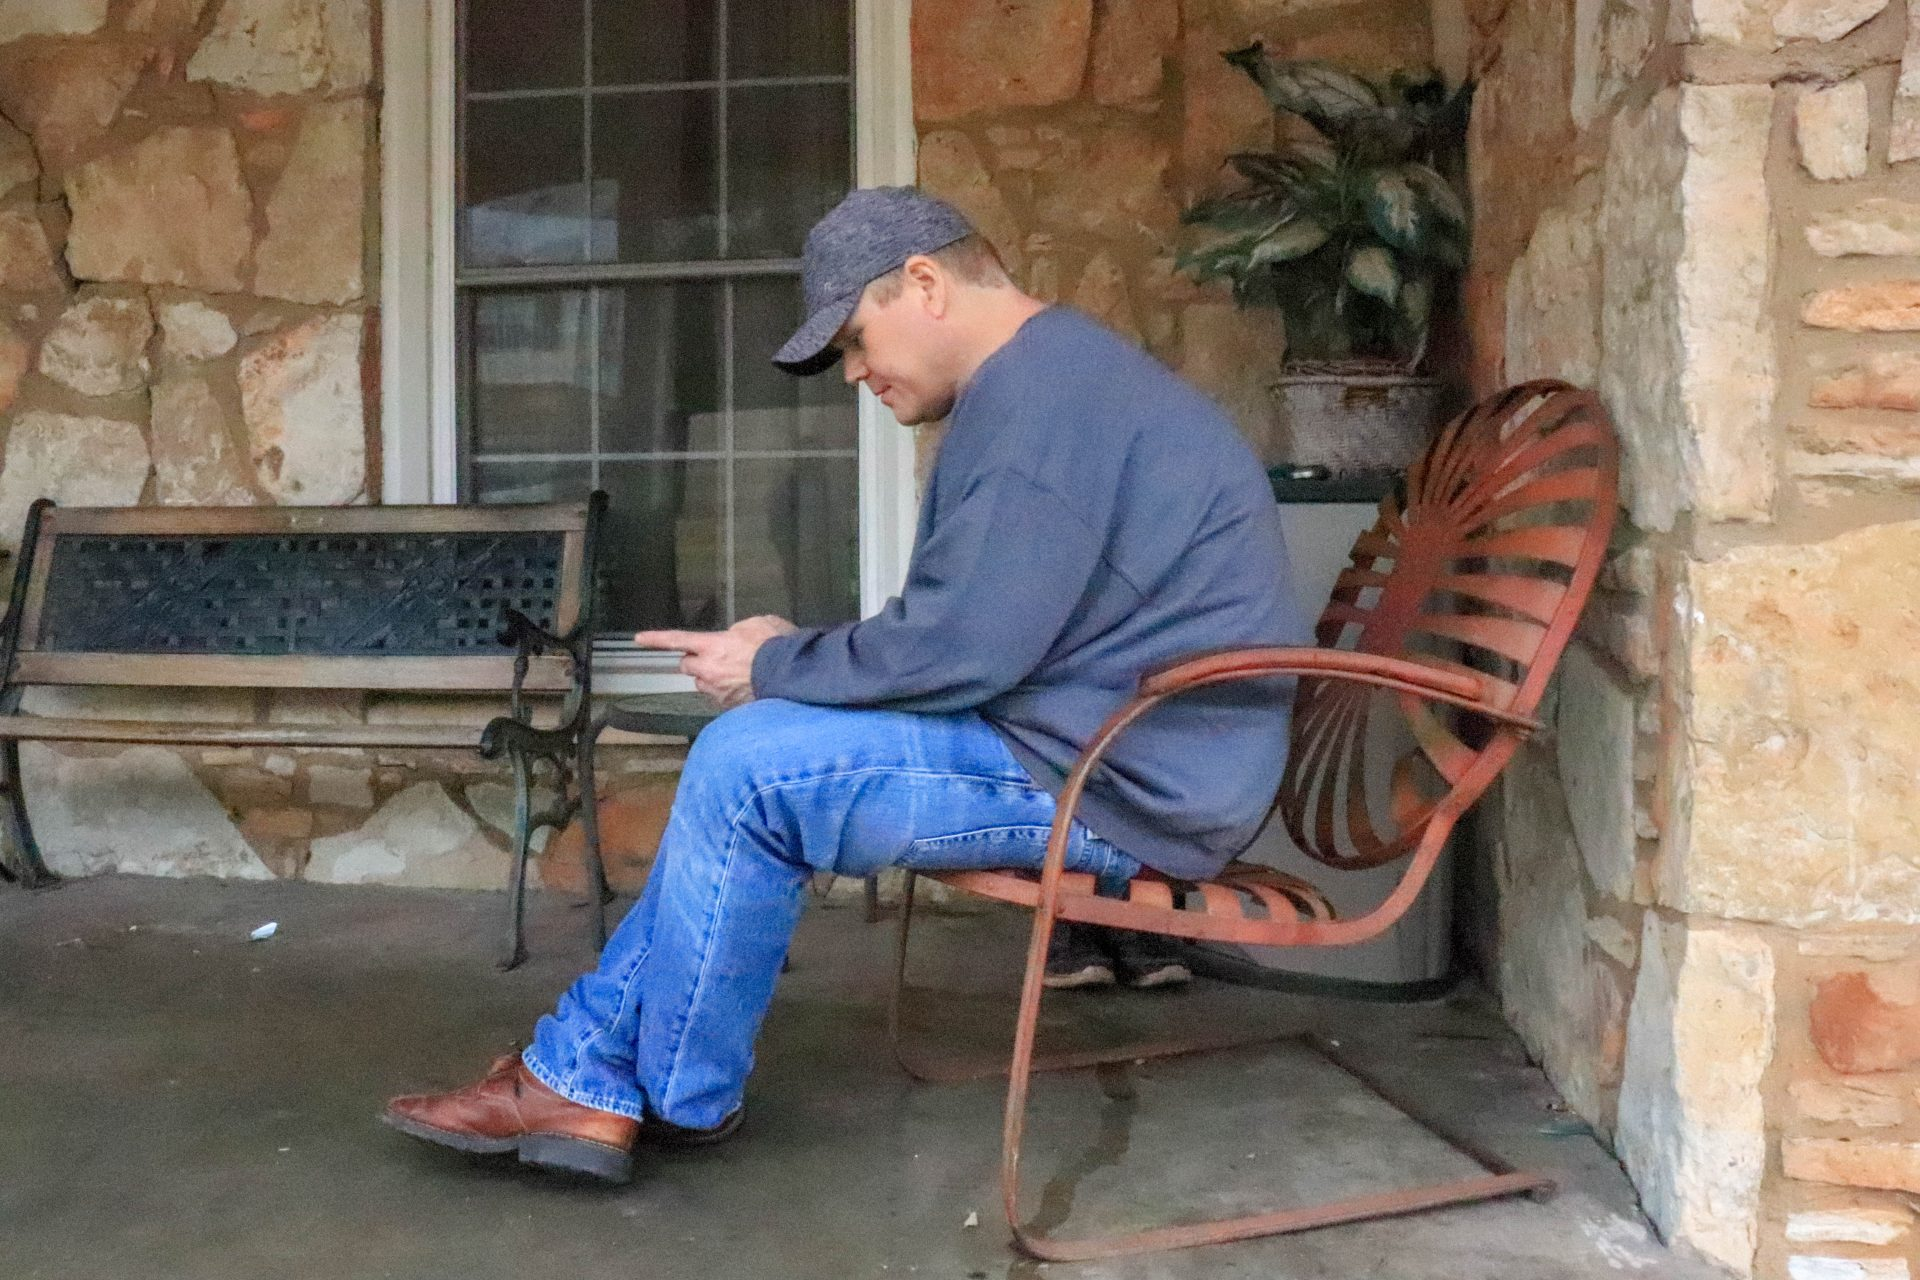 Warren Rawls sits on a bench in front of a stone house.